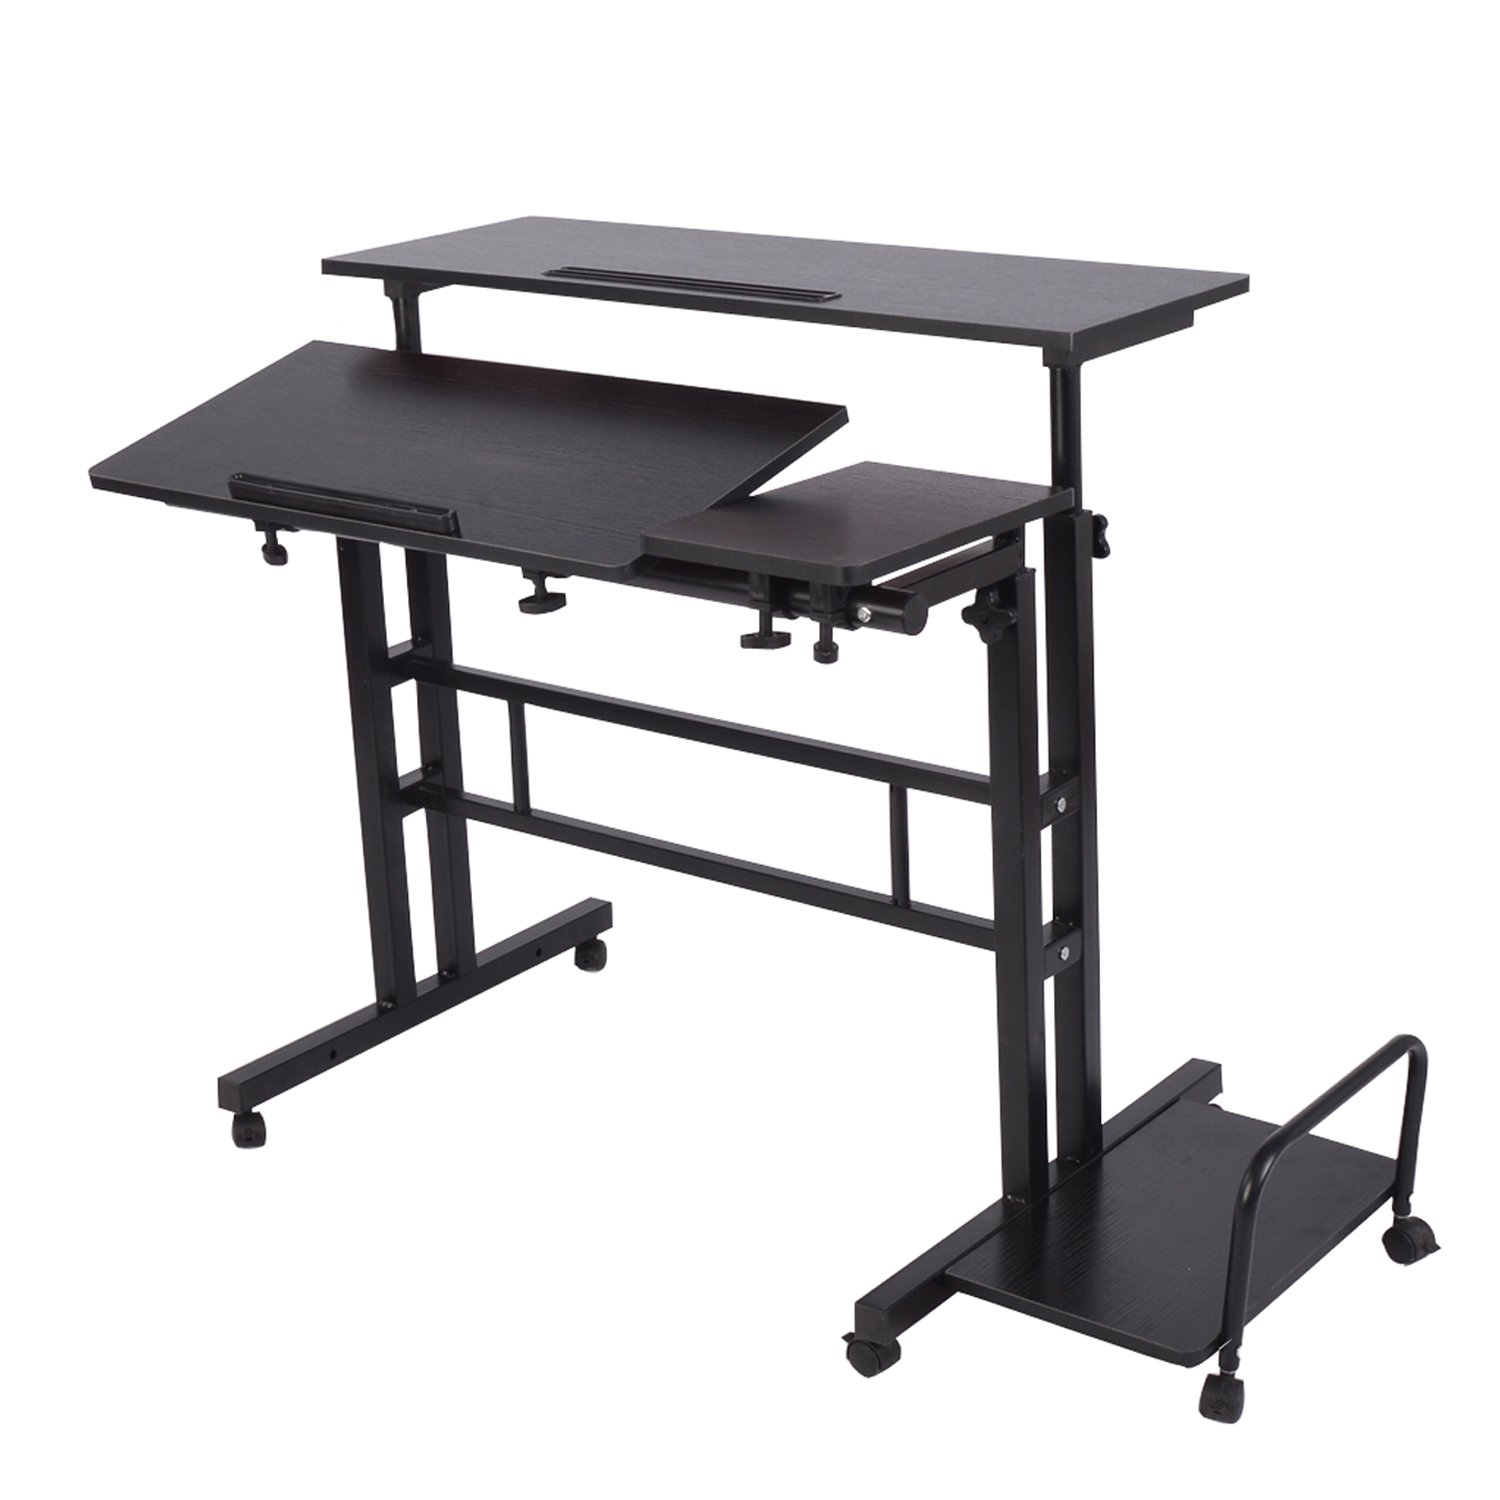 "Adjustable Sit to Stand up Desk Standing Desk Laptop Desk Table Stand Computer Workstation with Keyboard Computer Case Wheels Mobile Height 26.4"" to 45.3"" 2-Tier Portable Desk Home Office Heavy Duty"